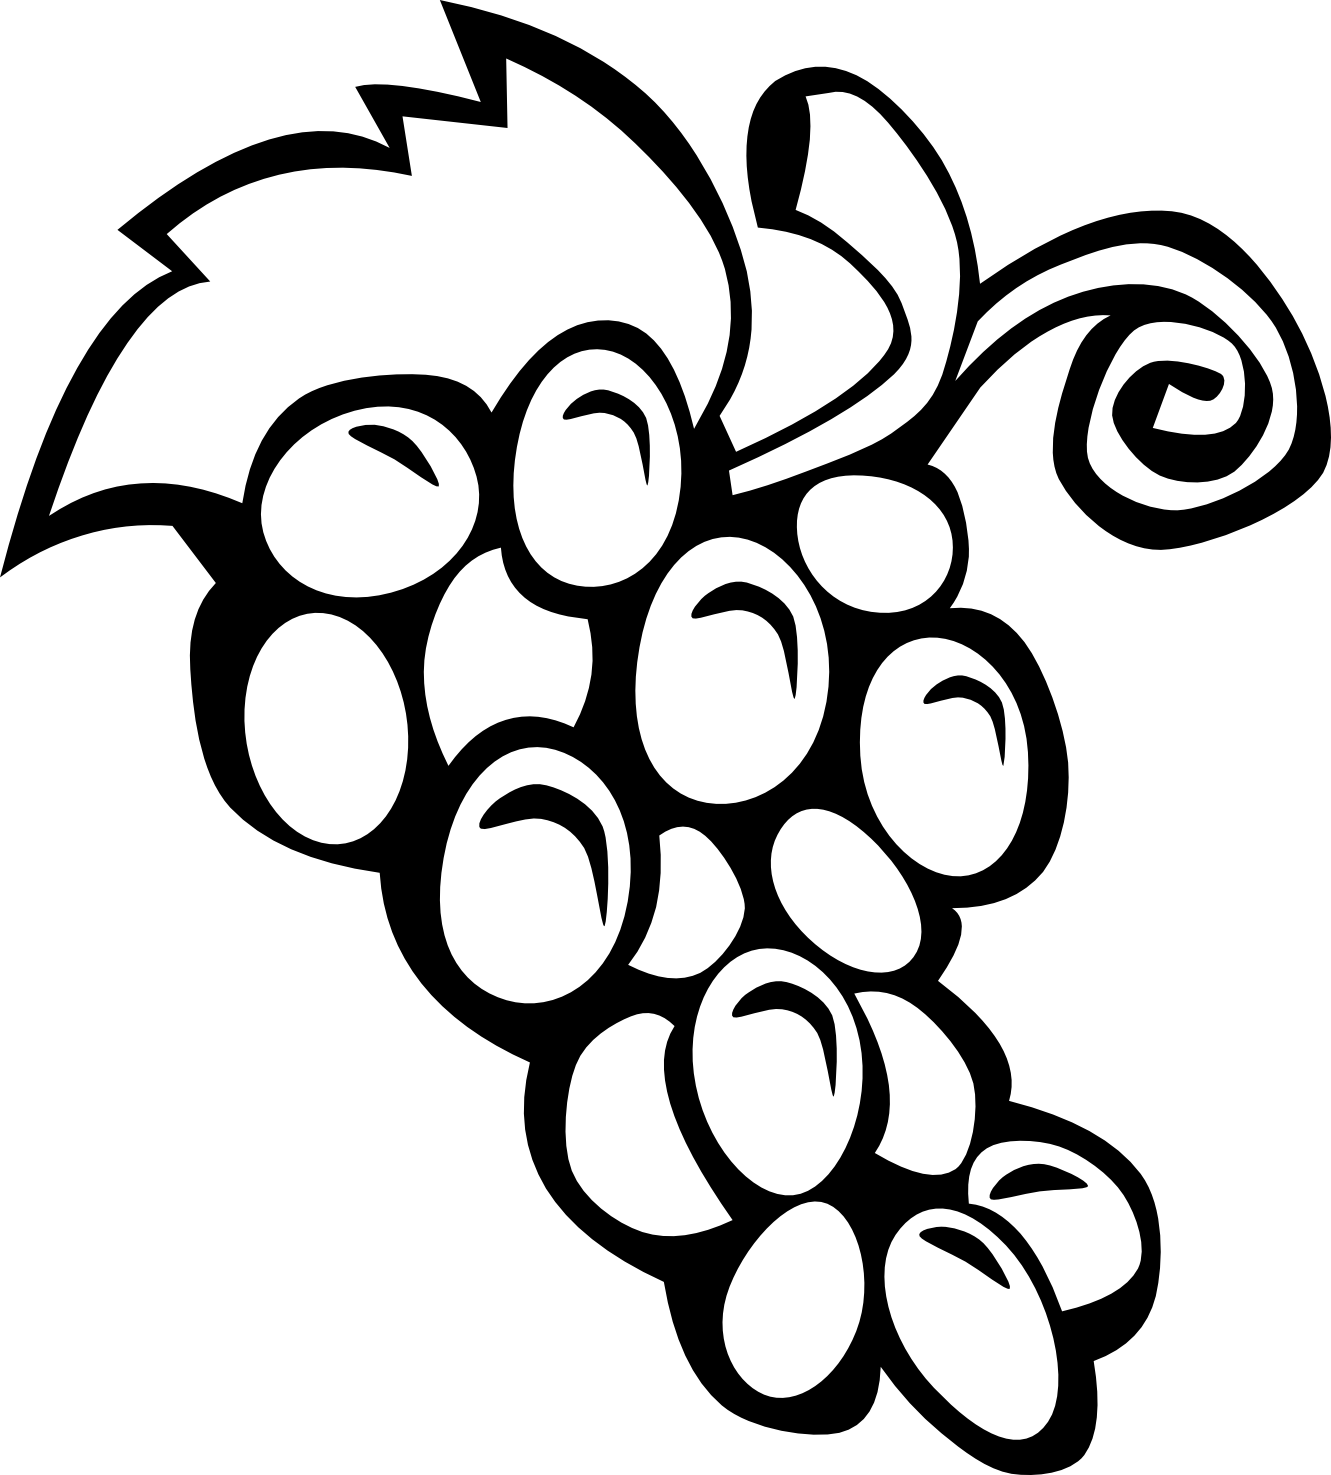 All black and white clipart clip black and white download Fruits Clipart Black And White - Cliparts.co clip black and white download